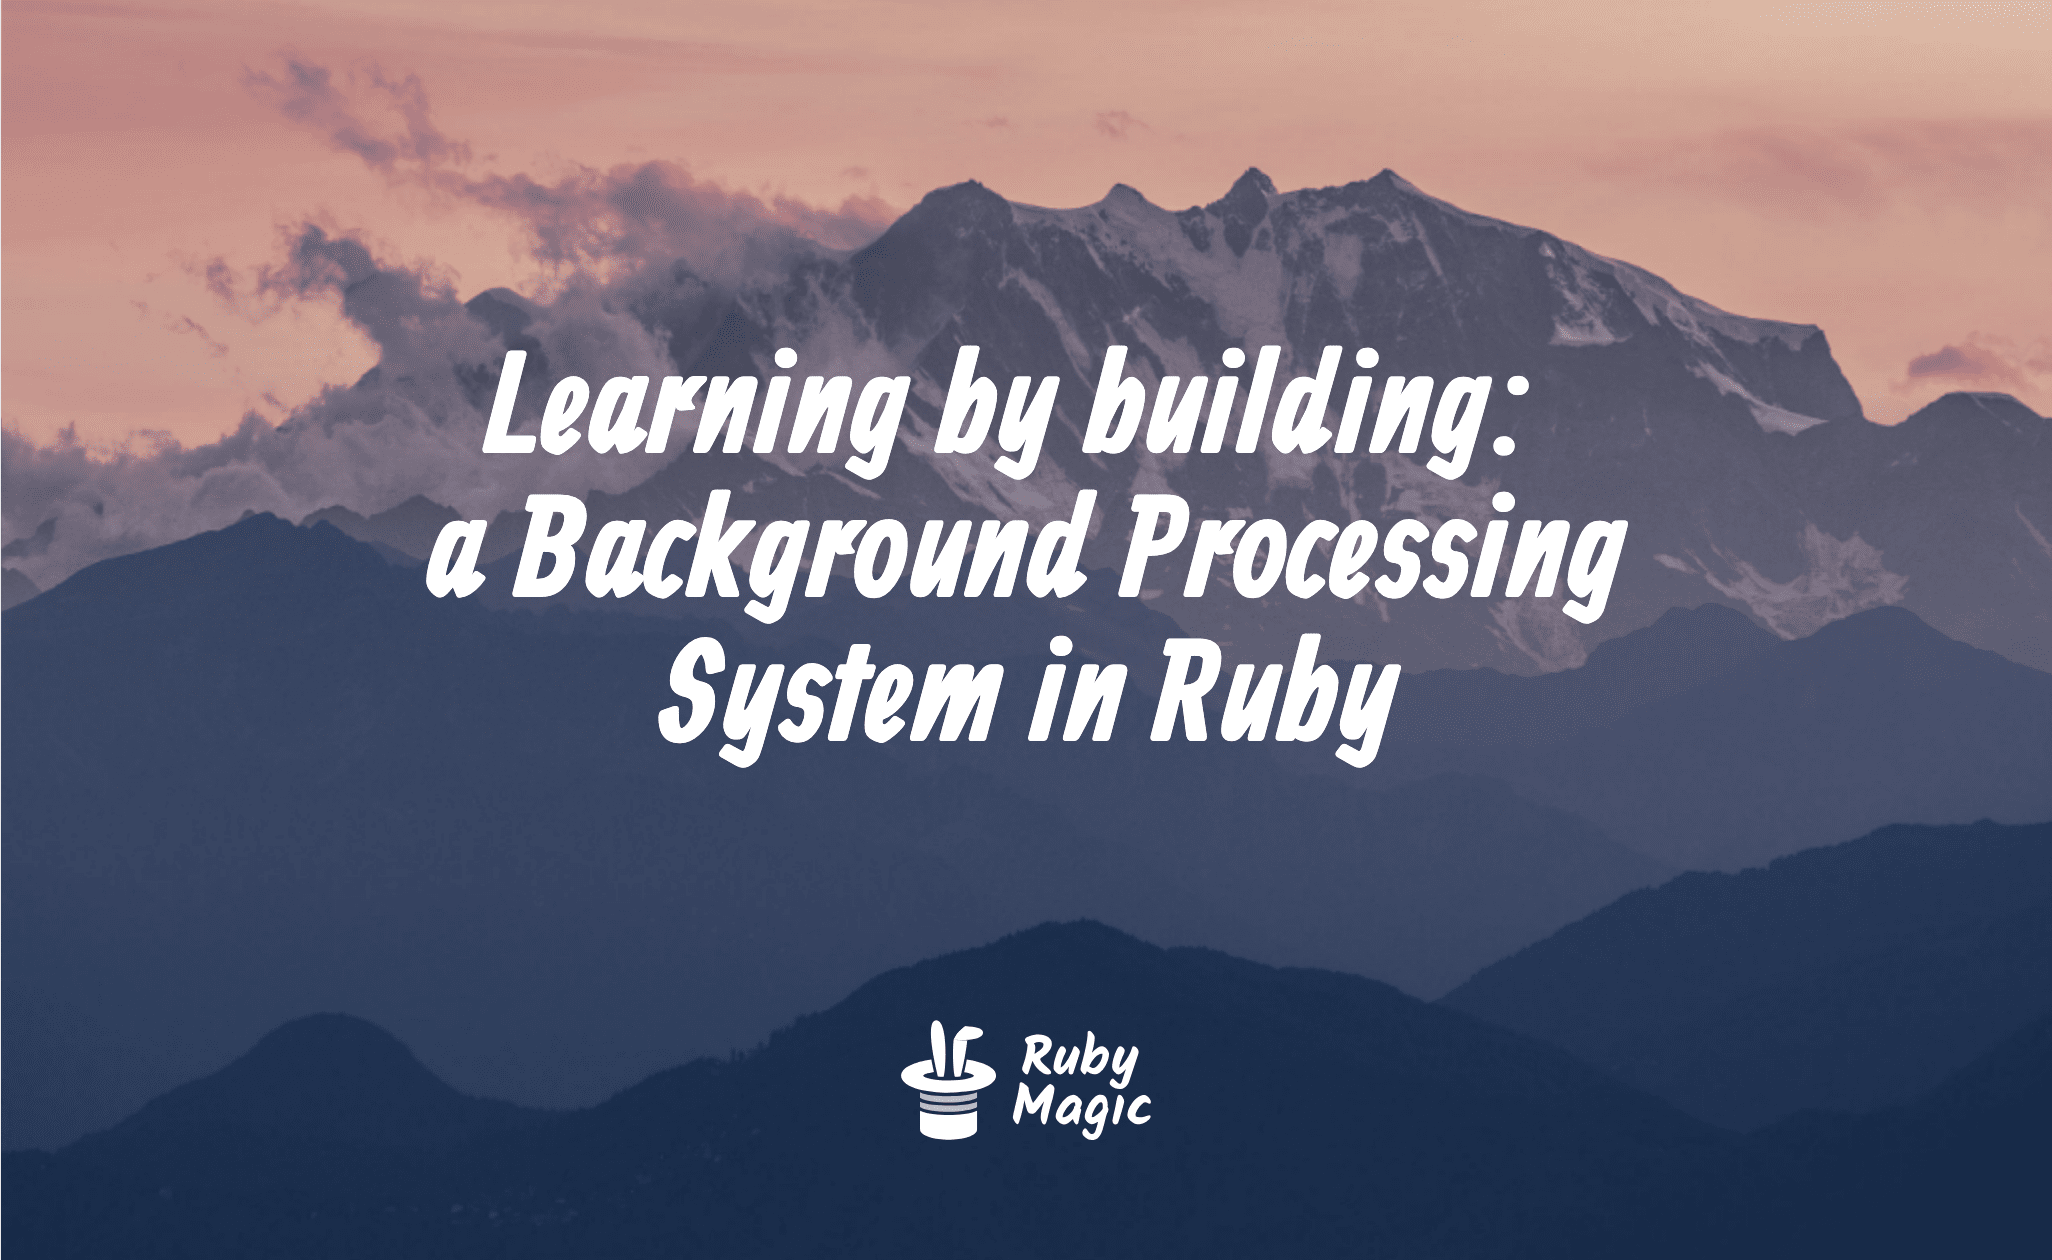 Learning by building, a Background Processing System in Ruby